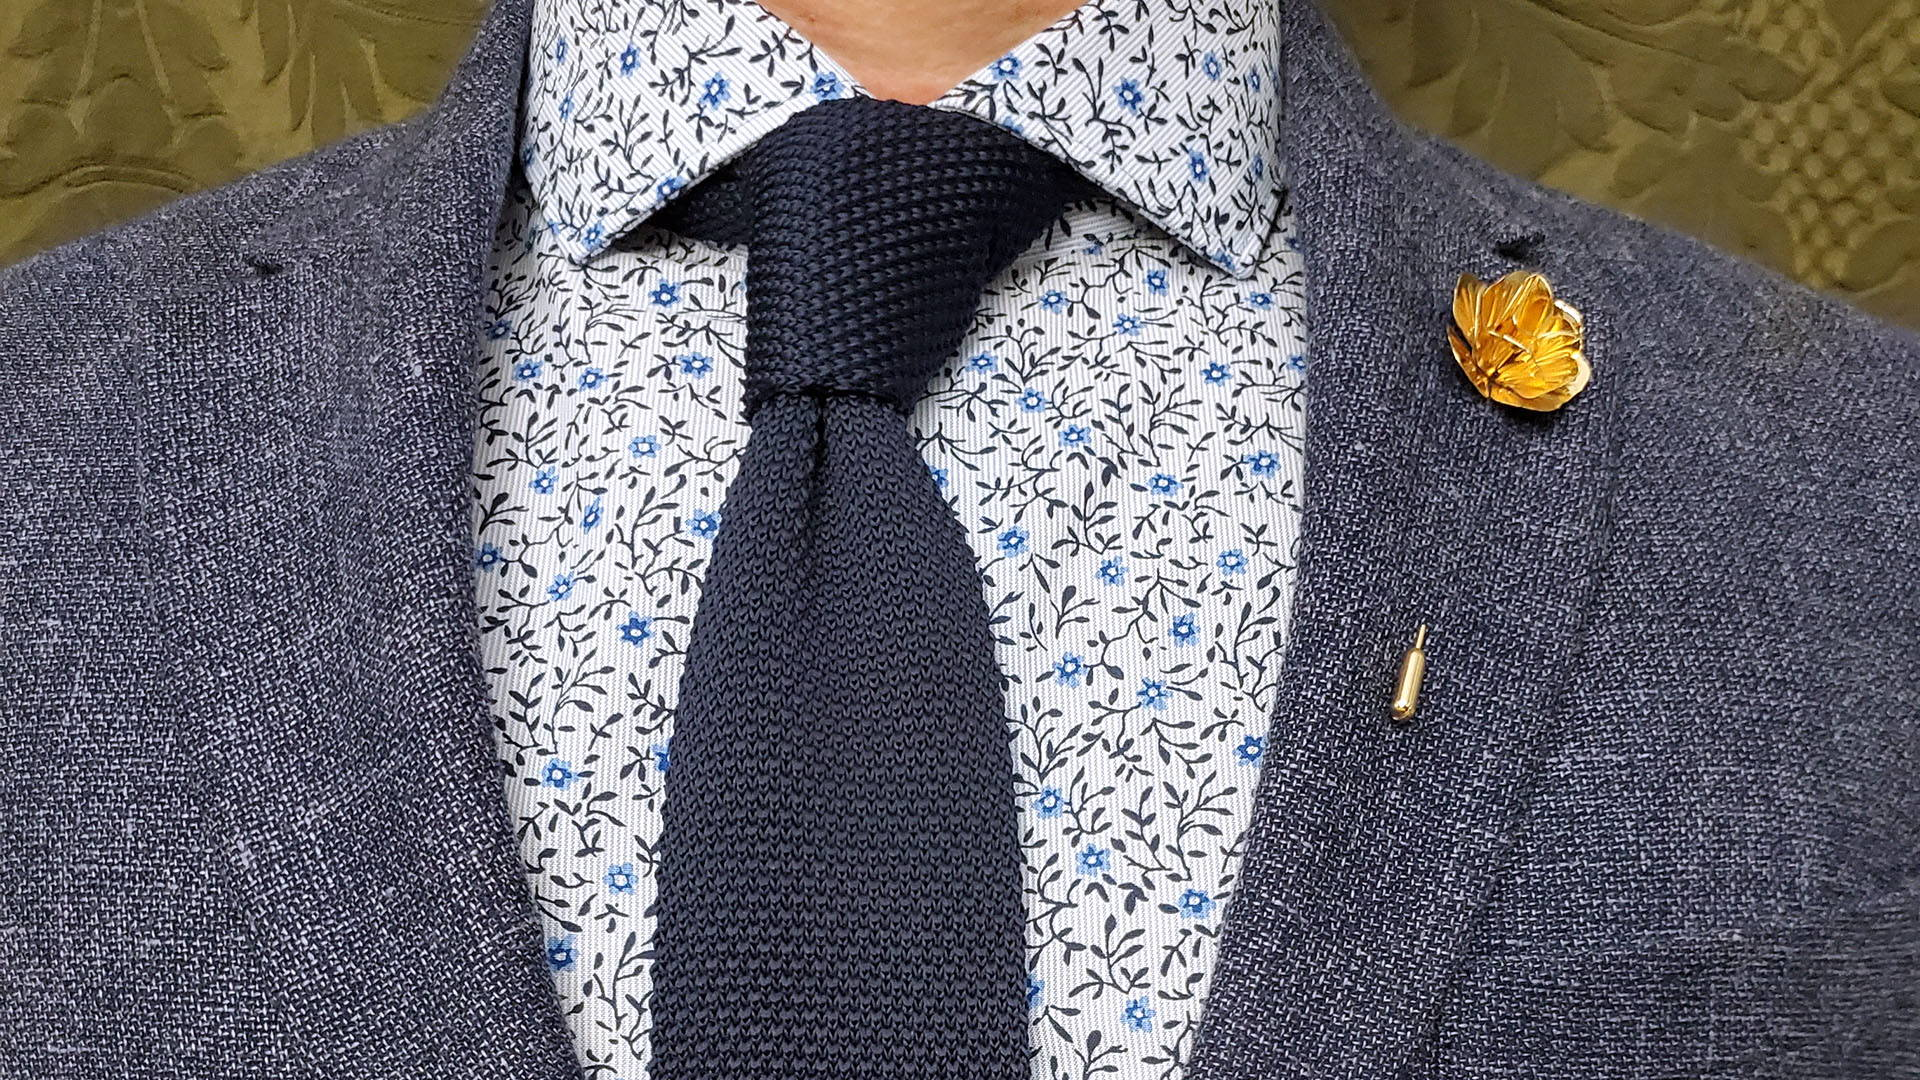 8 Stylish Tips for Casually Wearing a Knit Tie